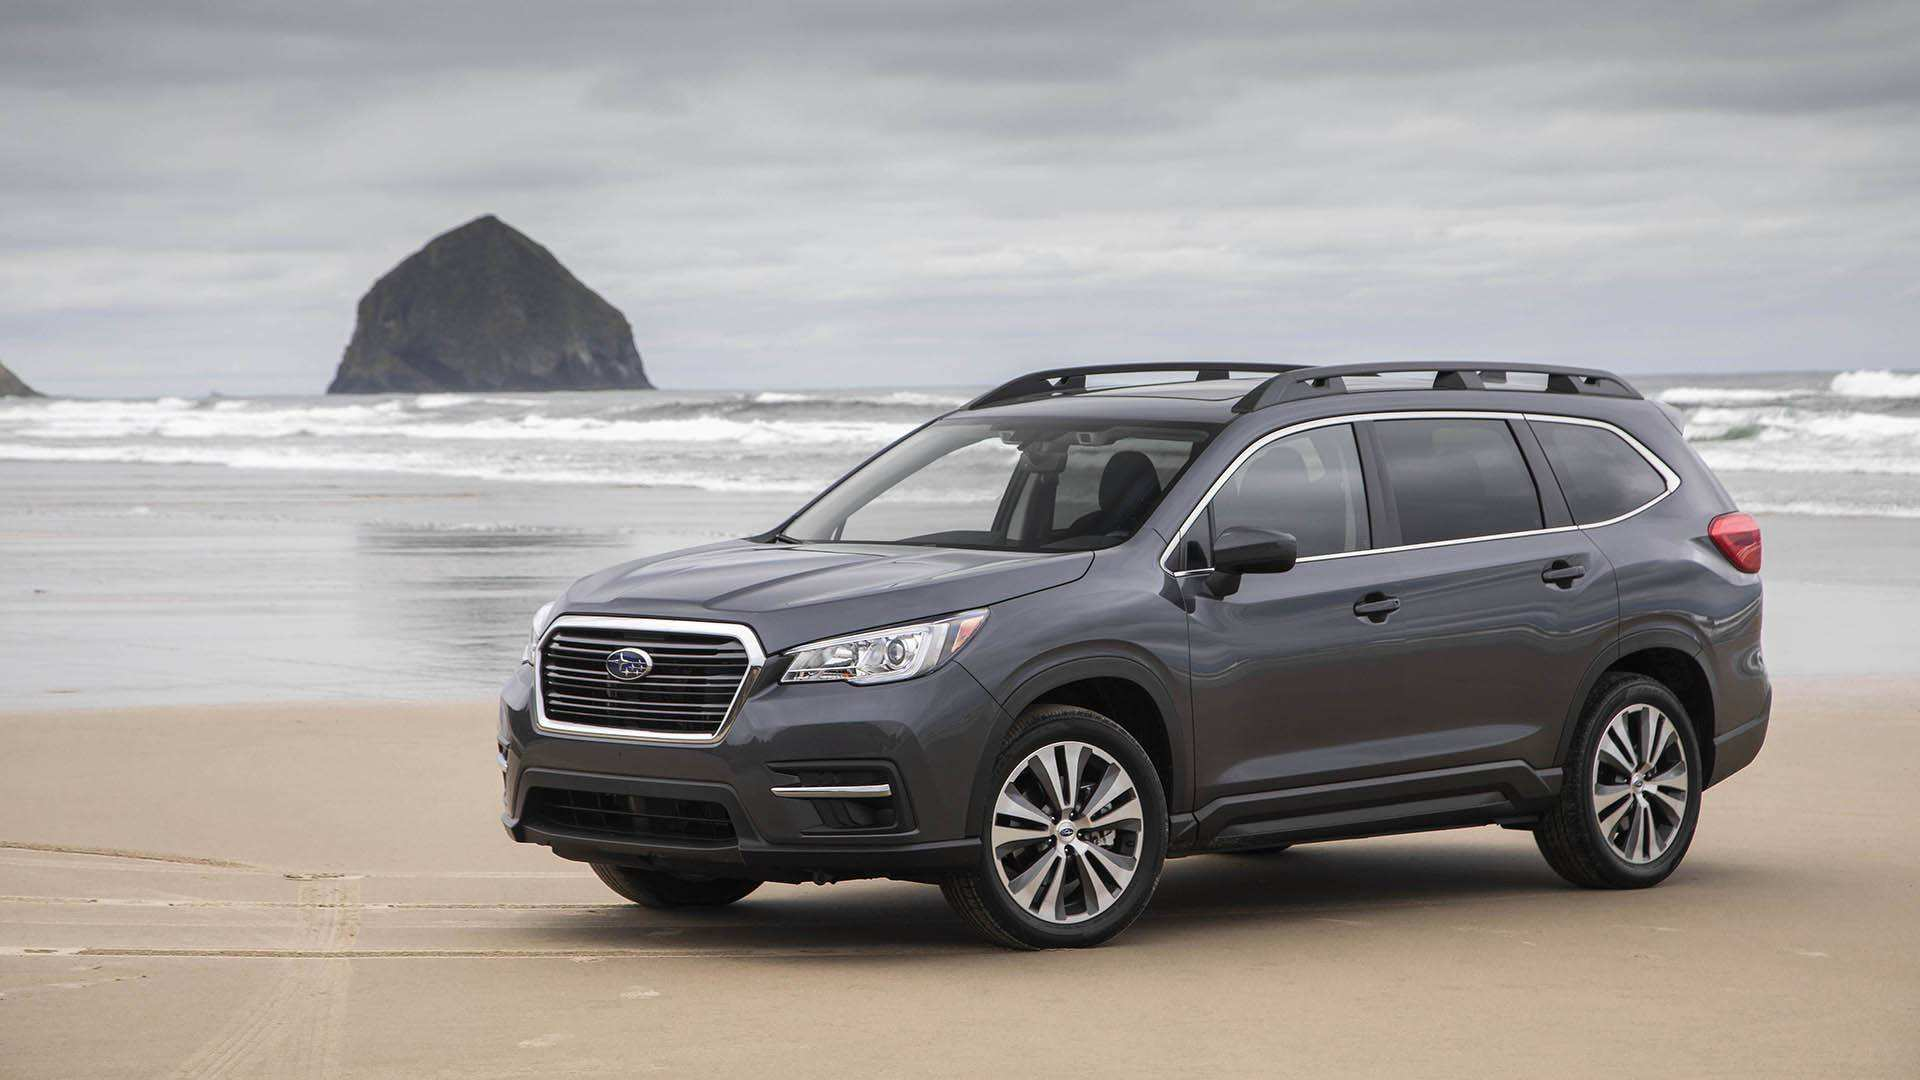 44 The 2019 Subaru Ascent 0 60 Pictures